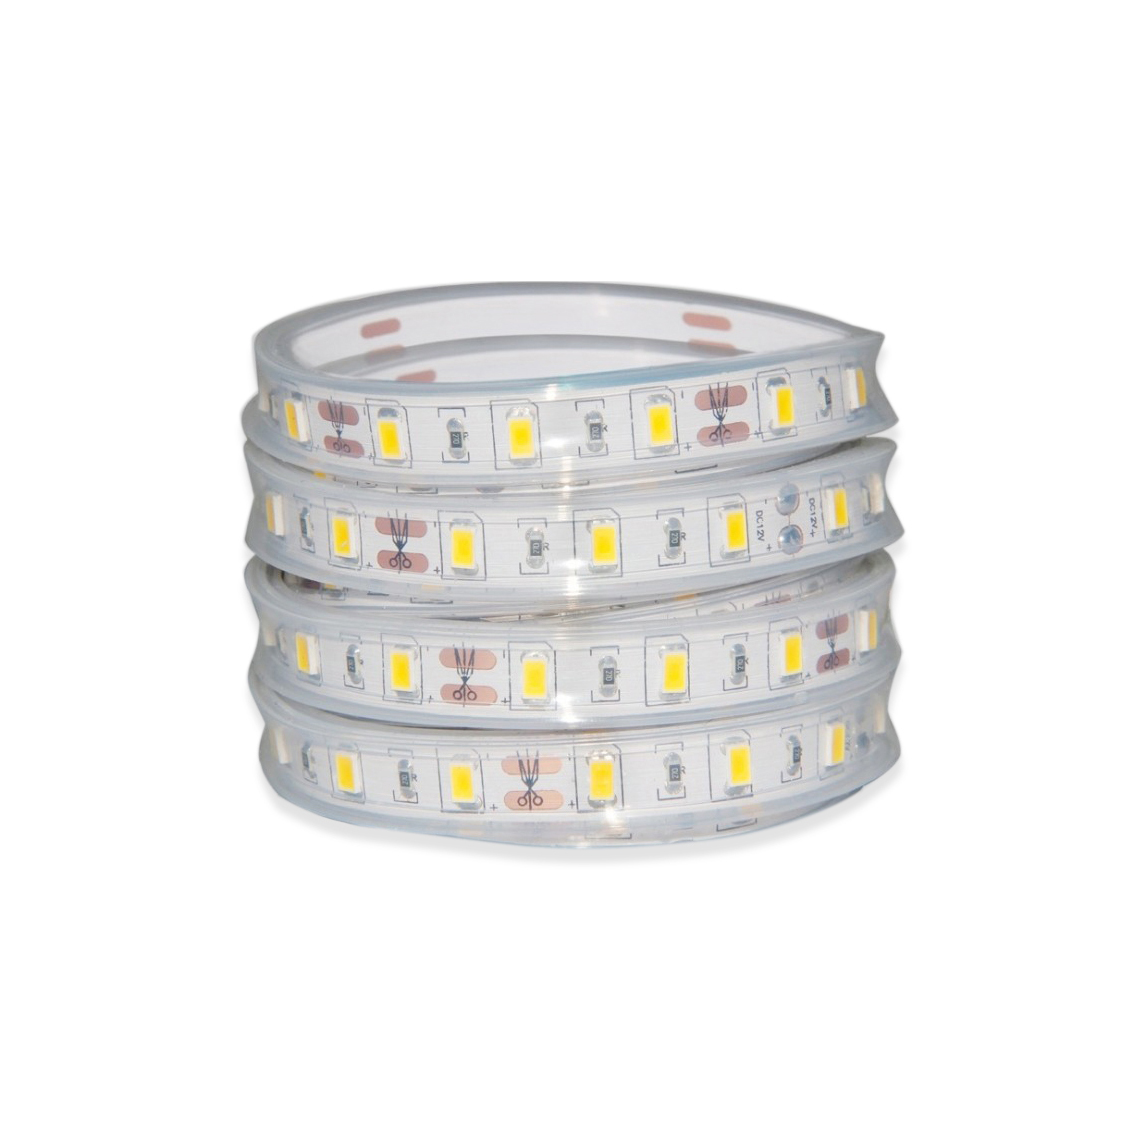 IP68 SMD5730 Silicone Encased Flexible LED Strip, Suitable for Outdoor Use